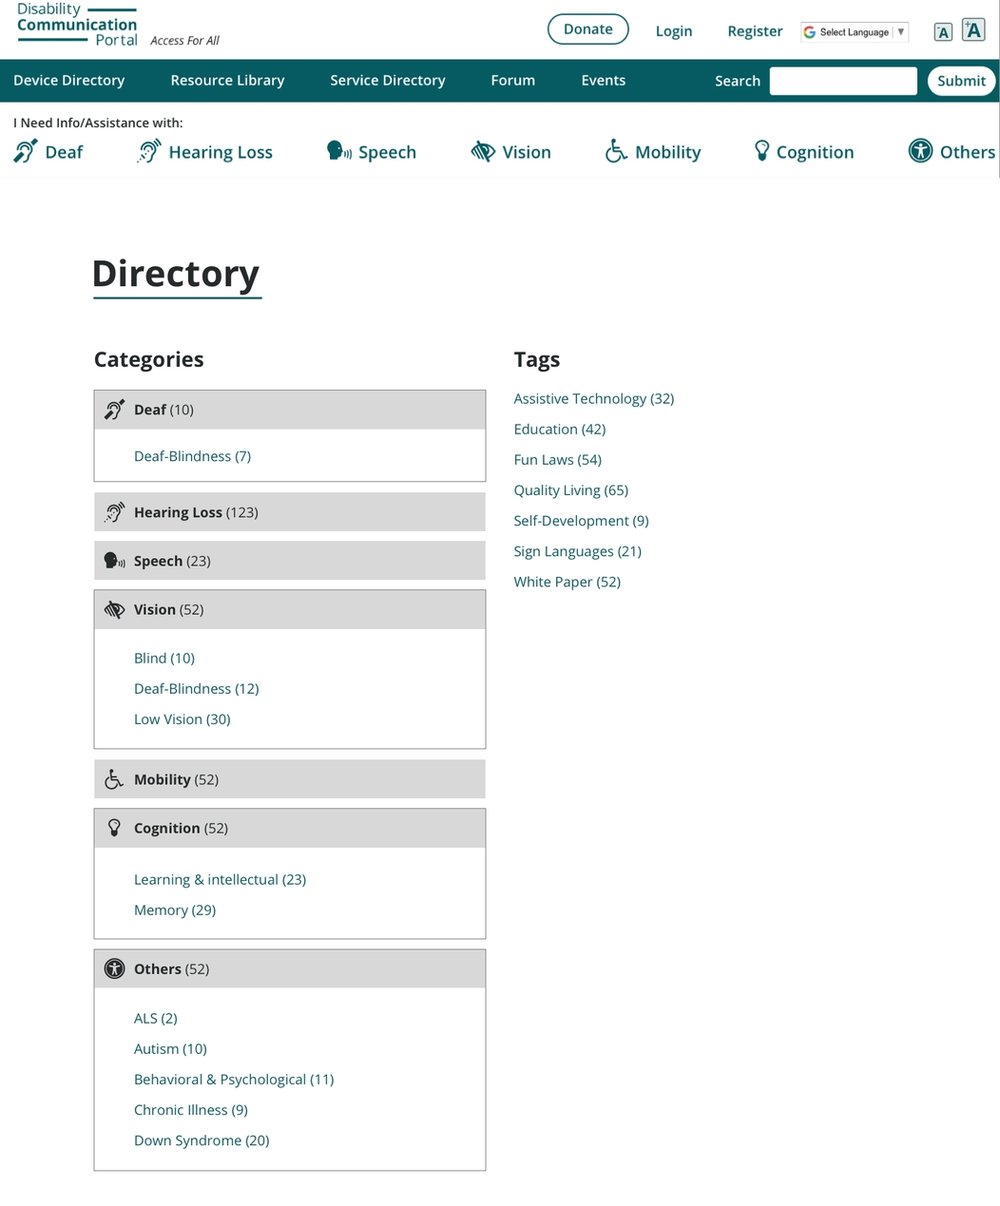 This is the mock of the actual directory page, which is linked from the Resource Library Landing Page.